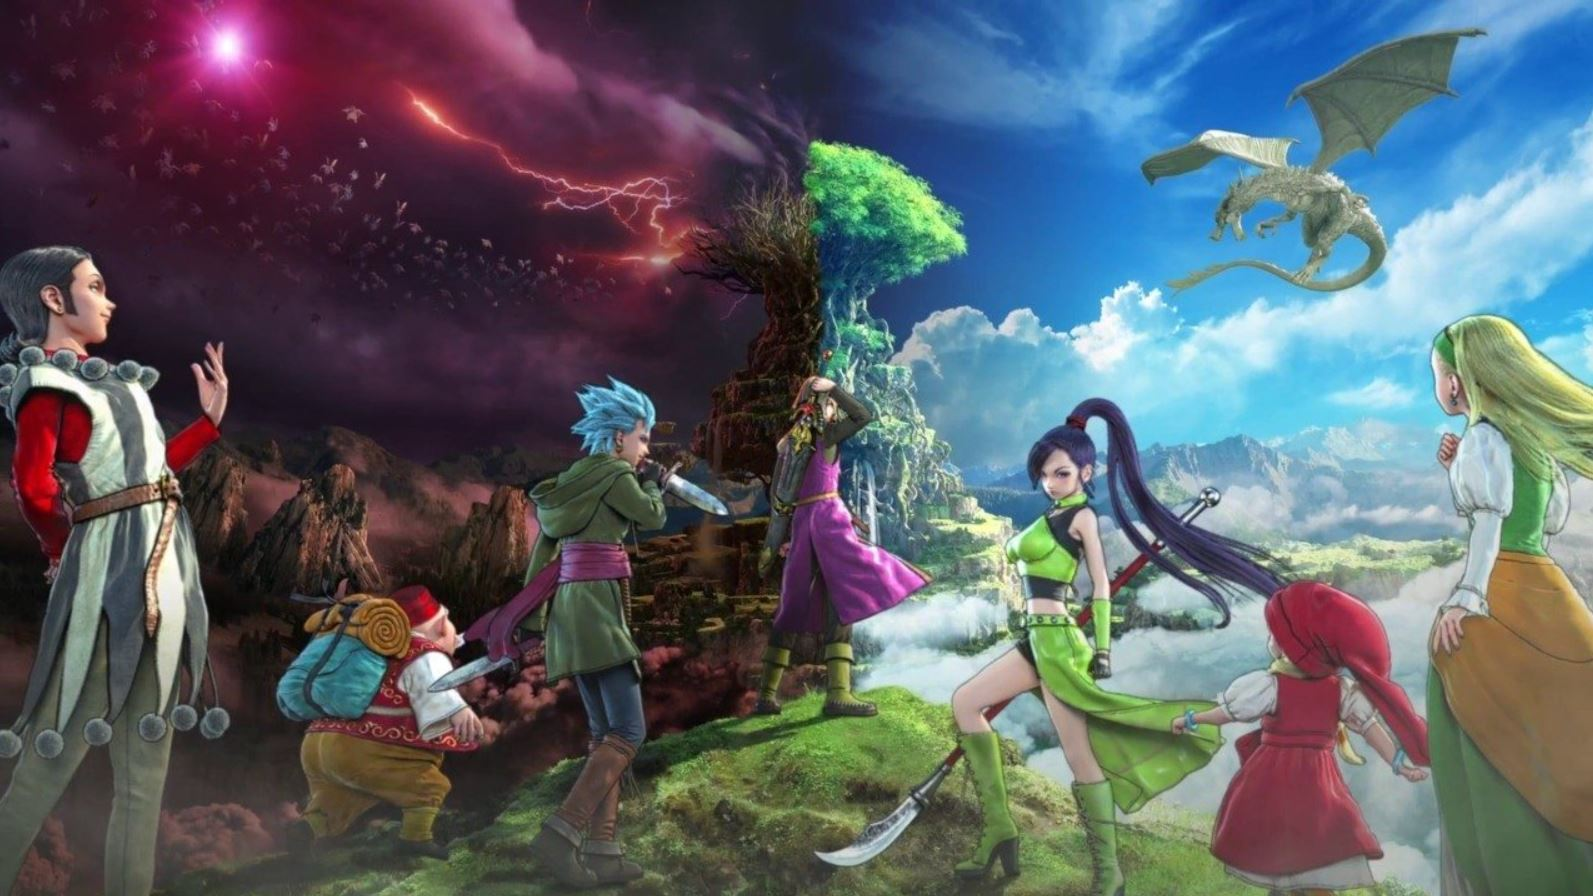 dragon-quest-xi-s-echoes-of-an-elusive-age-definitive-edition-review-ps4